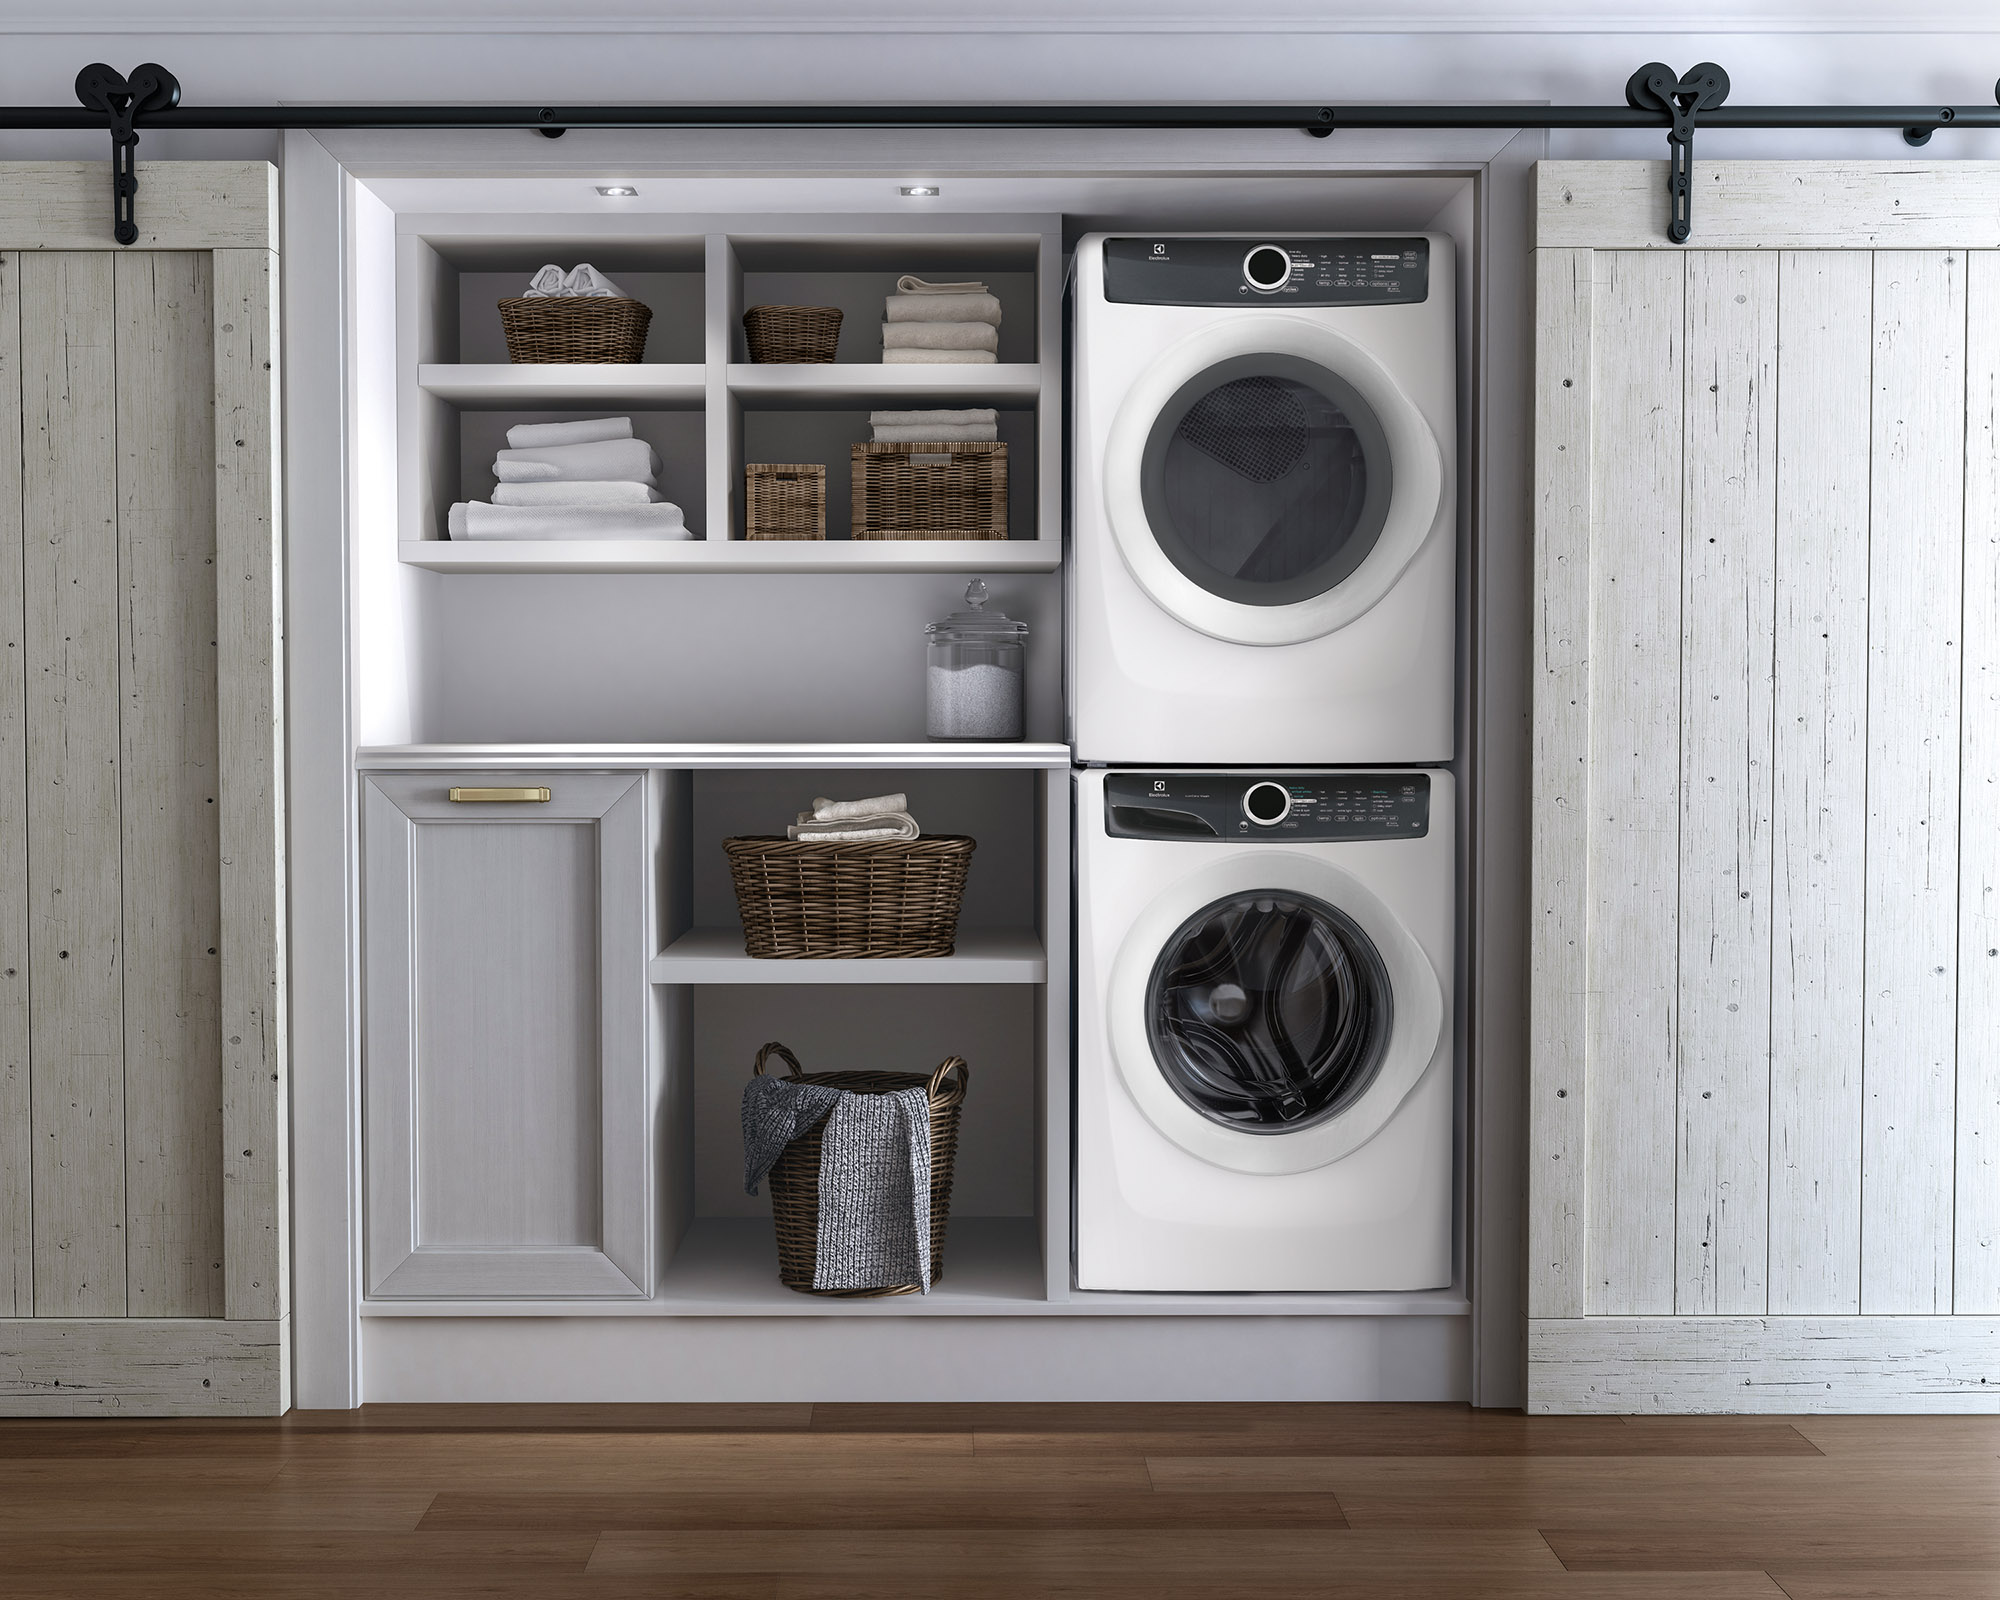 Electrolux EFLW417SIW 4.3 cu. ft. Front-Load Washer w/ LuxCare Wash System - White